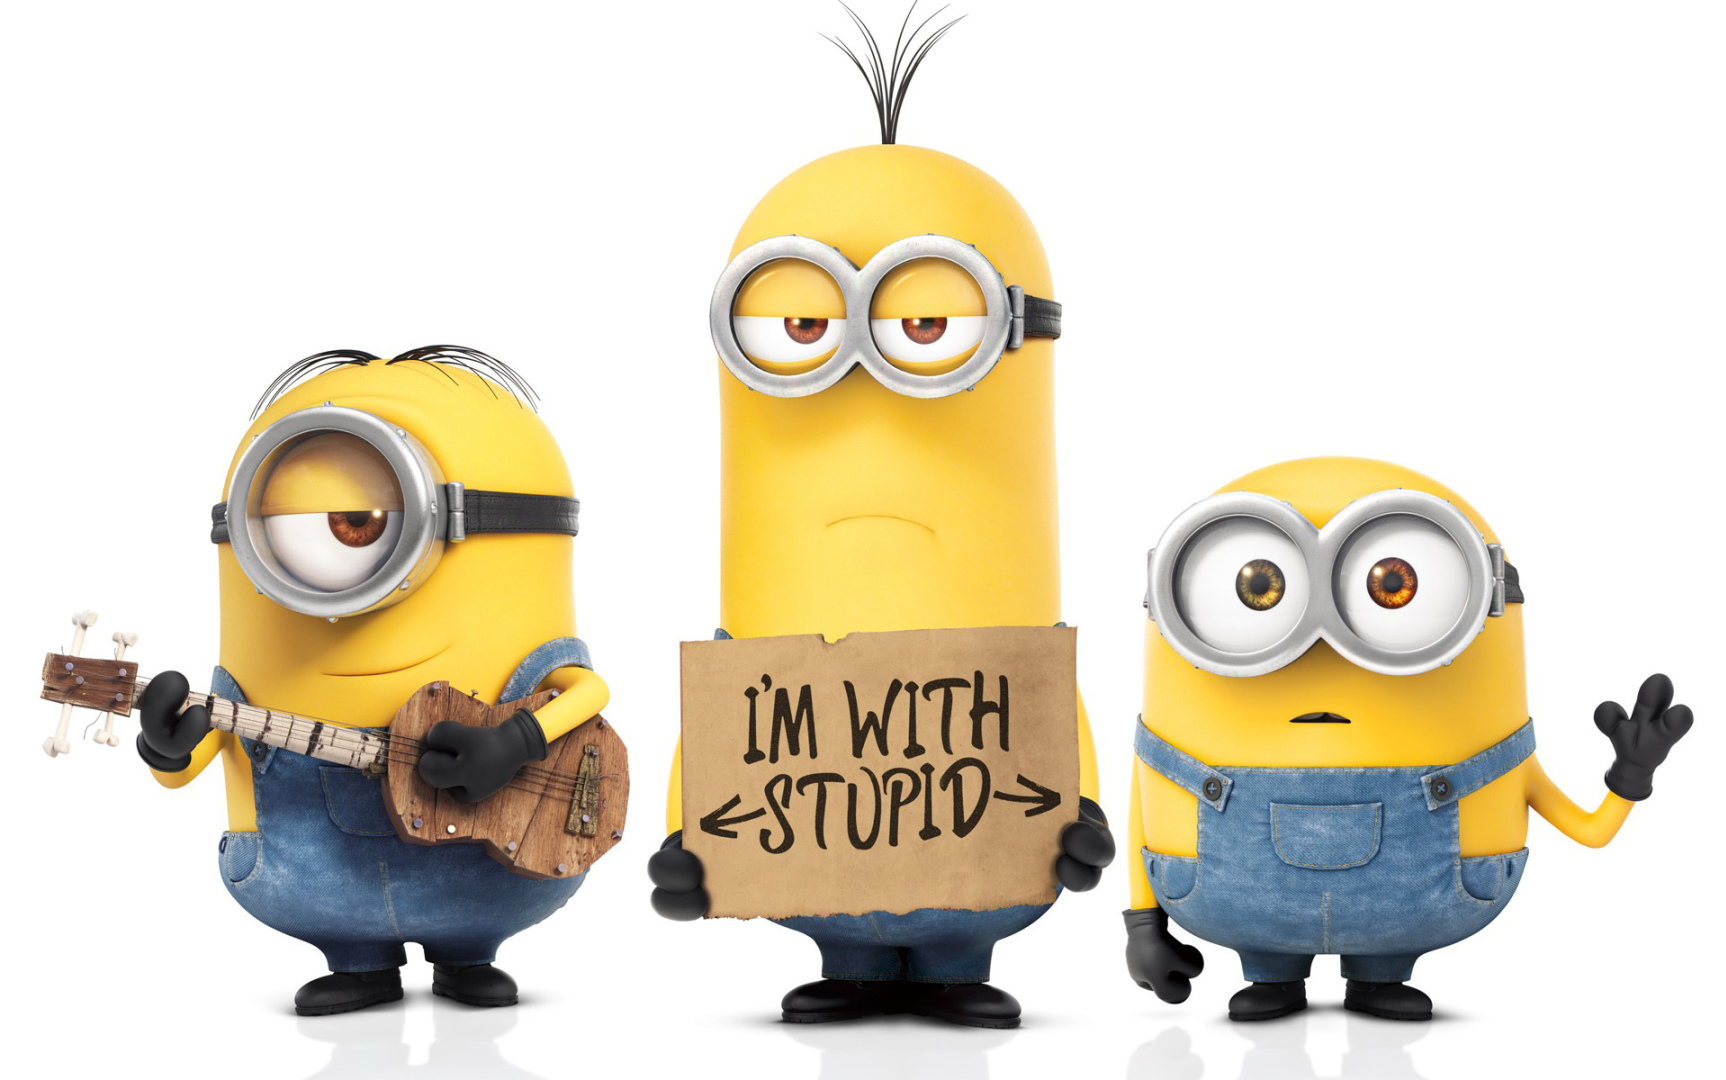 http://static.tvtropes.org/pmwiki/pub/images/minions_movie_poster.jpg